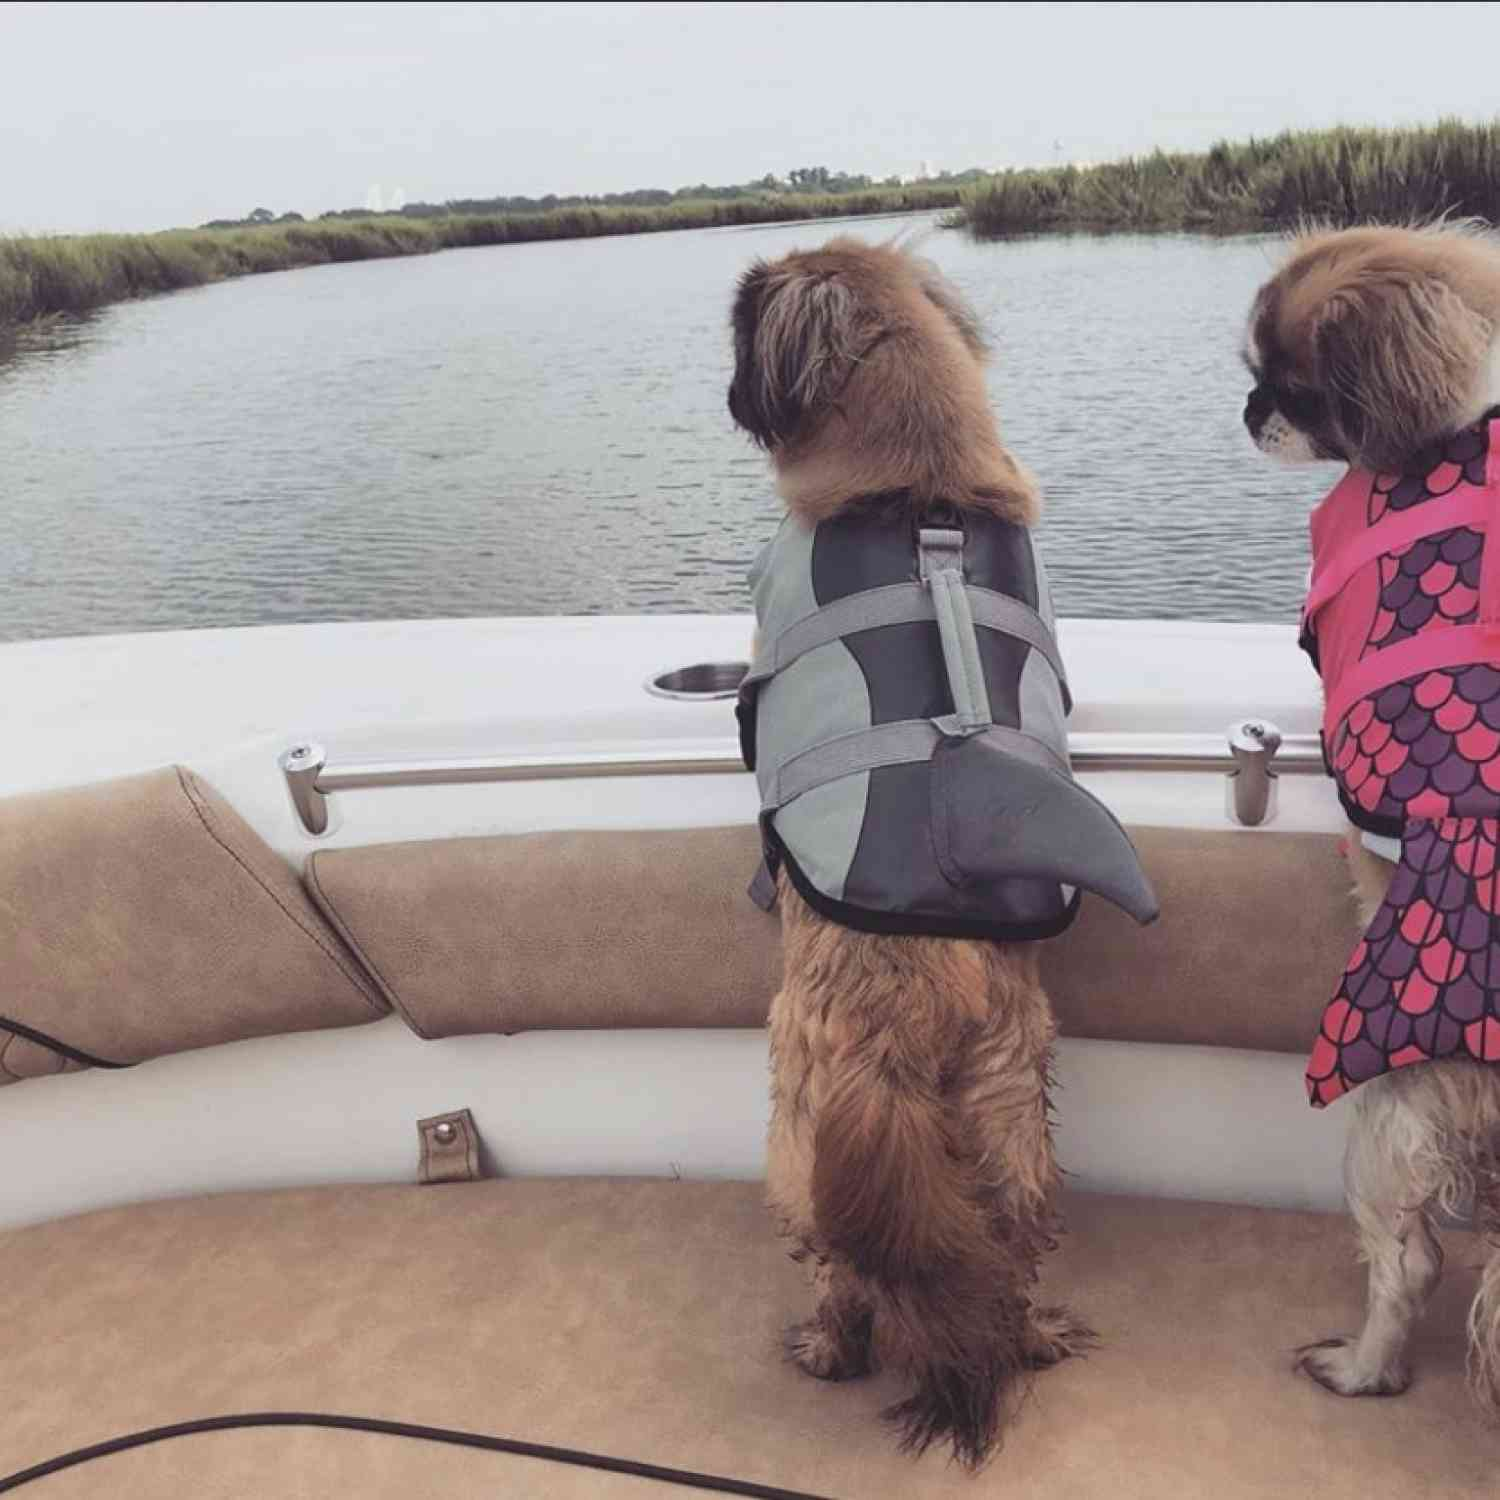 Title: Gizzy & Mo - On board their Sportsman Heritage 211 Center Console - Location: Charleston, SC. Participating in the Photo Contest #SportsmanAugust2020